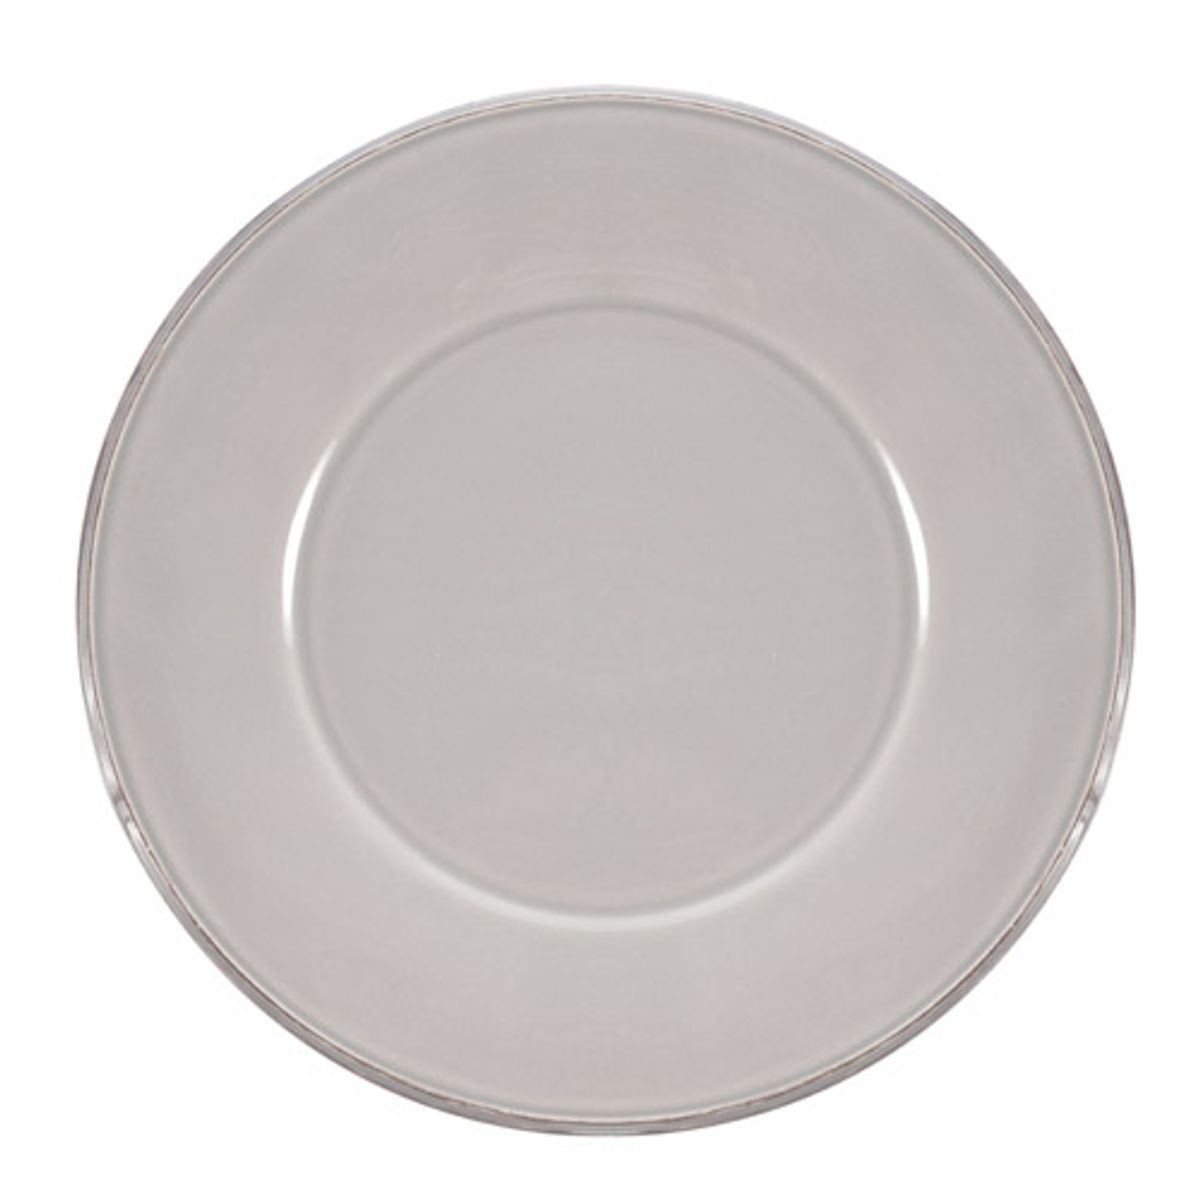 Assiette en faience grise par 6 constance c t table decoclico for Assiette cote table